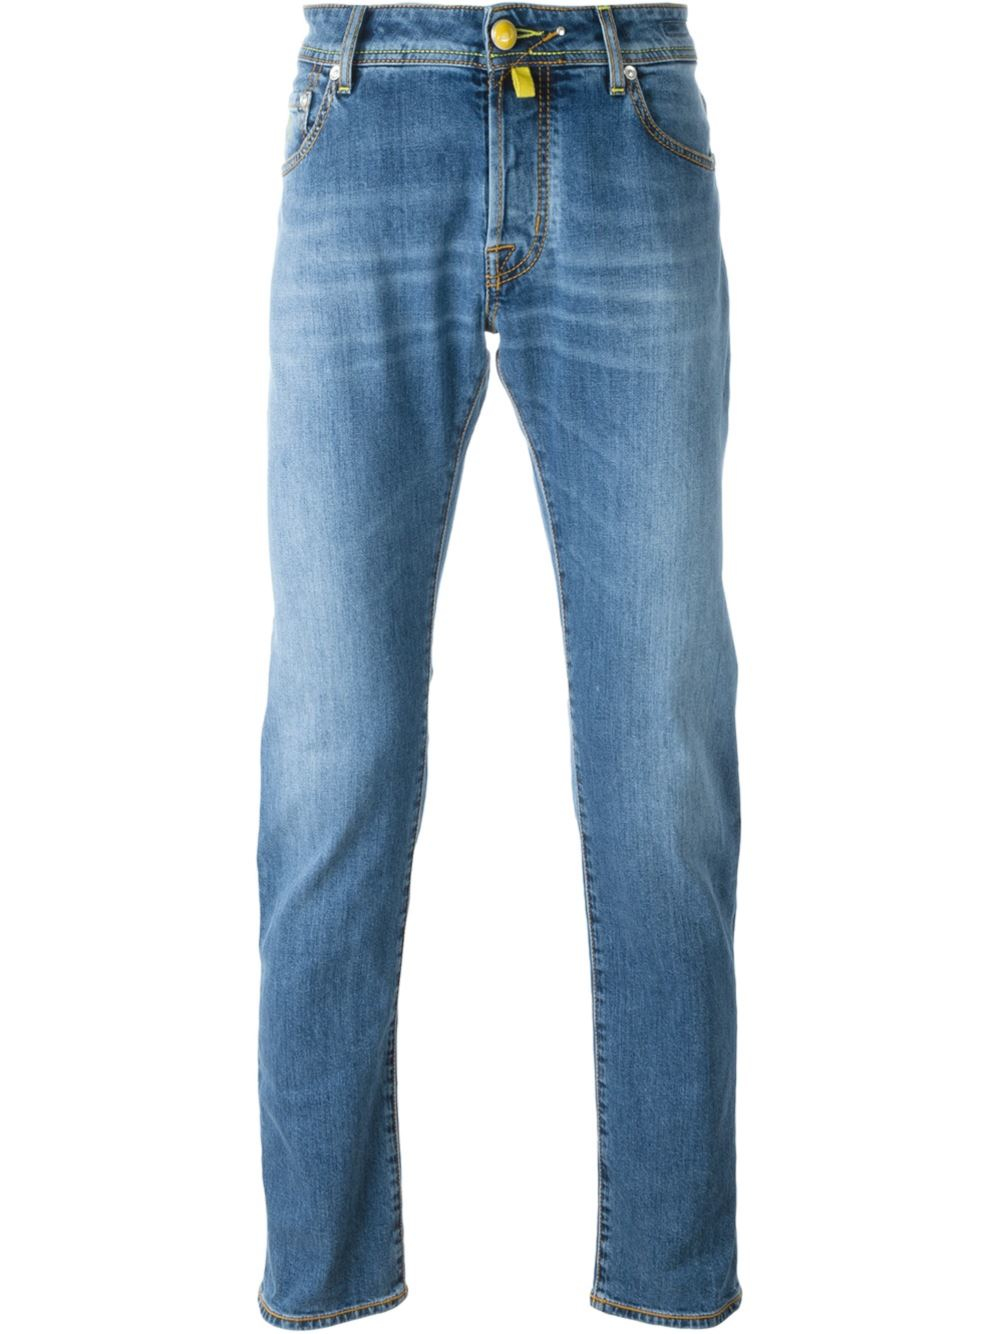 jacob cohen stone washed jeans in blue for men lyst. Black Bedroom Furniture Sets. Home Design Ideas